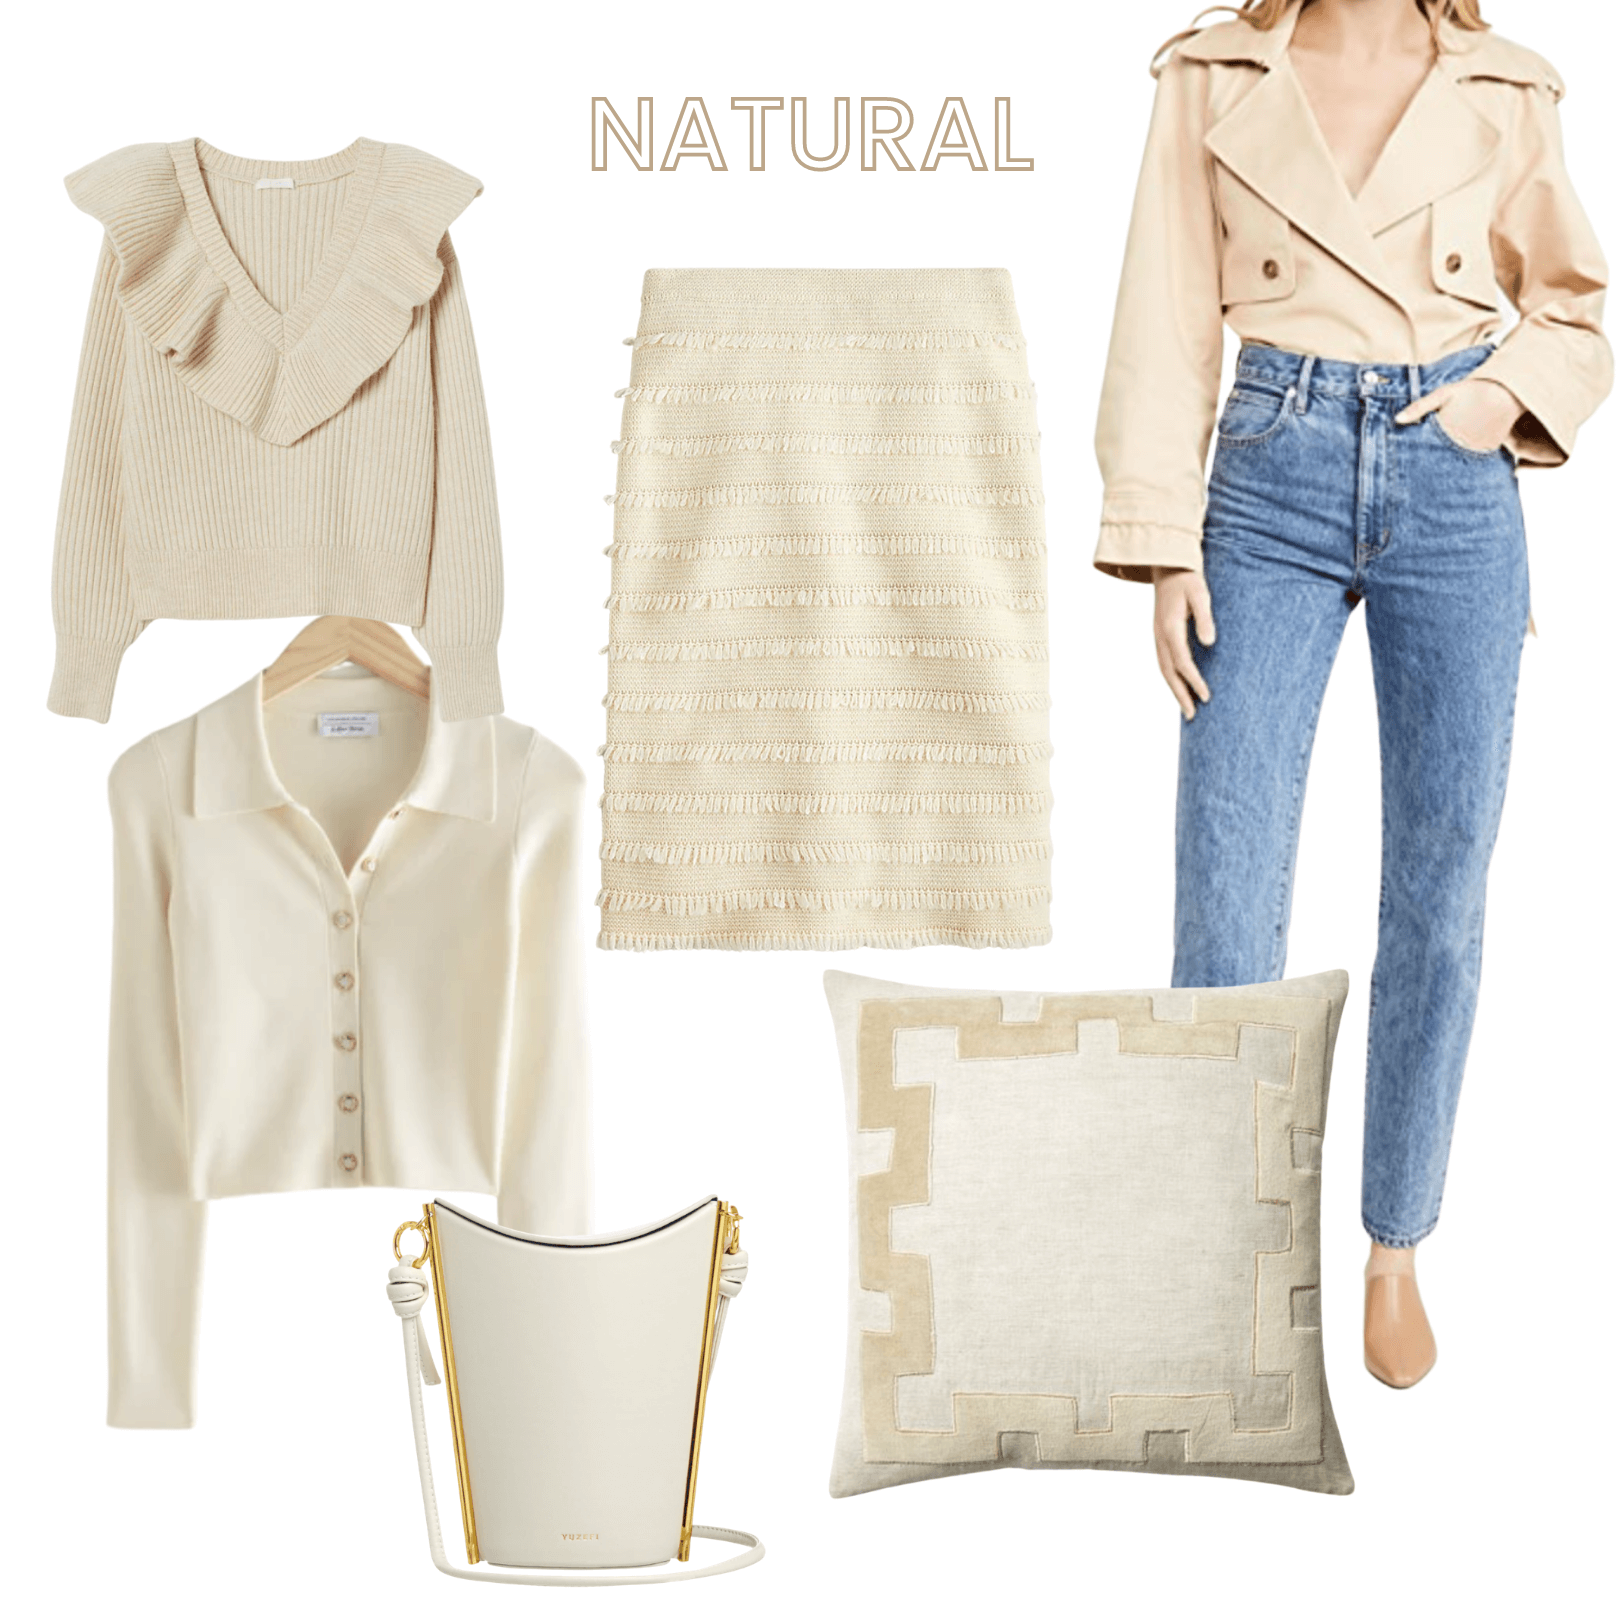 Natural Items to Love